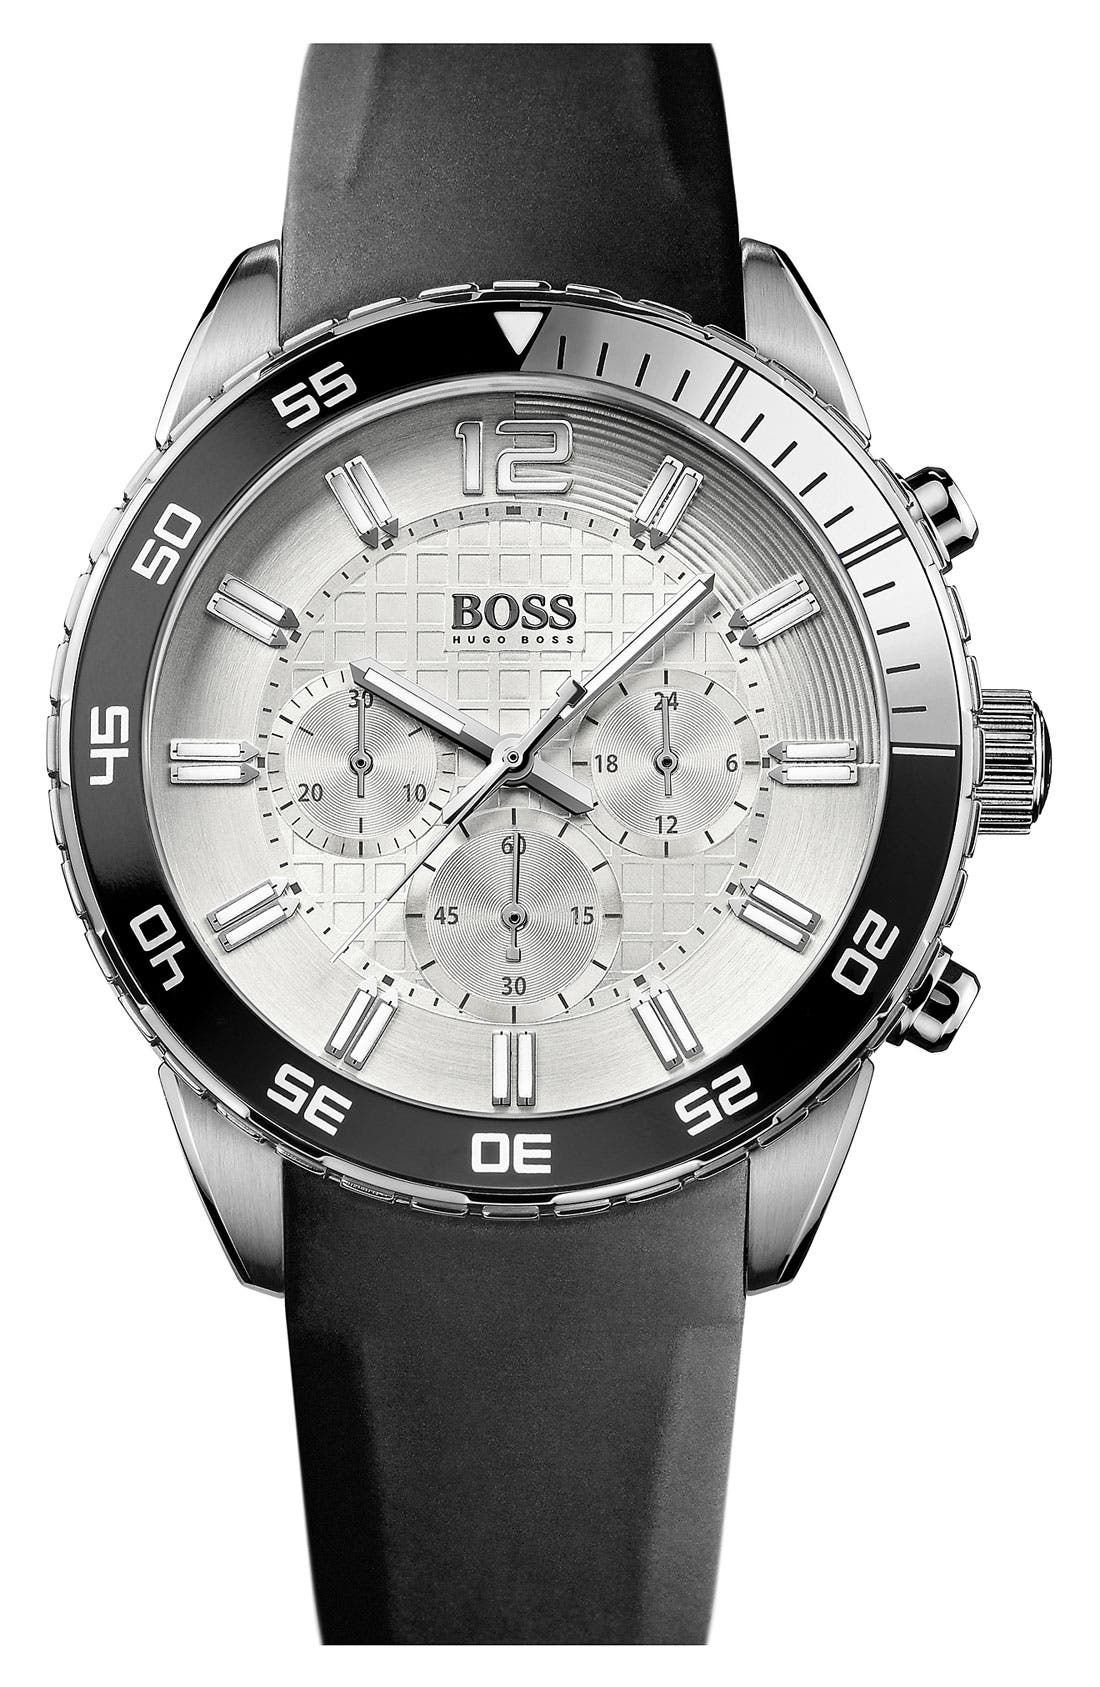 Main Image - BOSS HUGO BOSS 'Iconic' Chronograph Sport Watch, 44mm